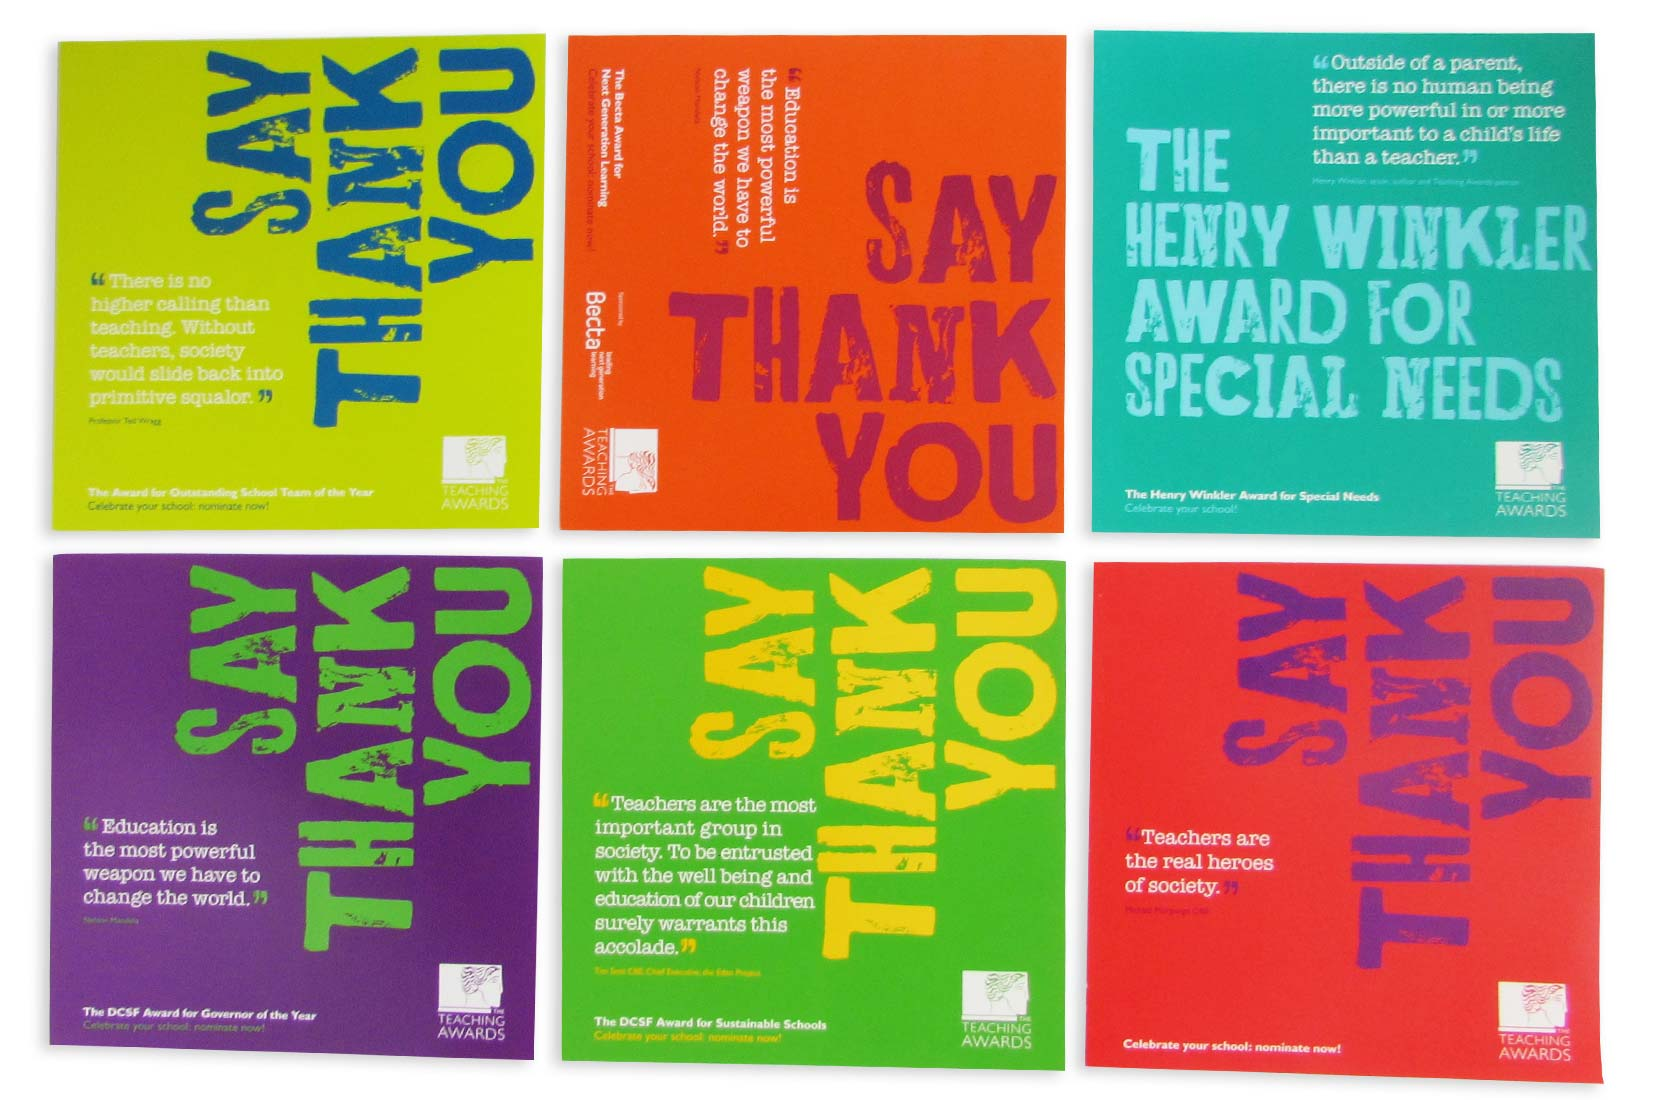 The Teaching Awards Cards